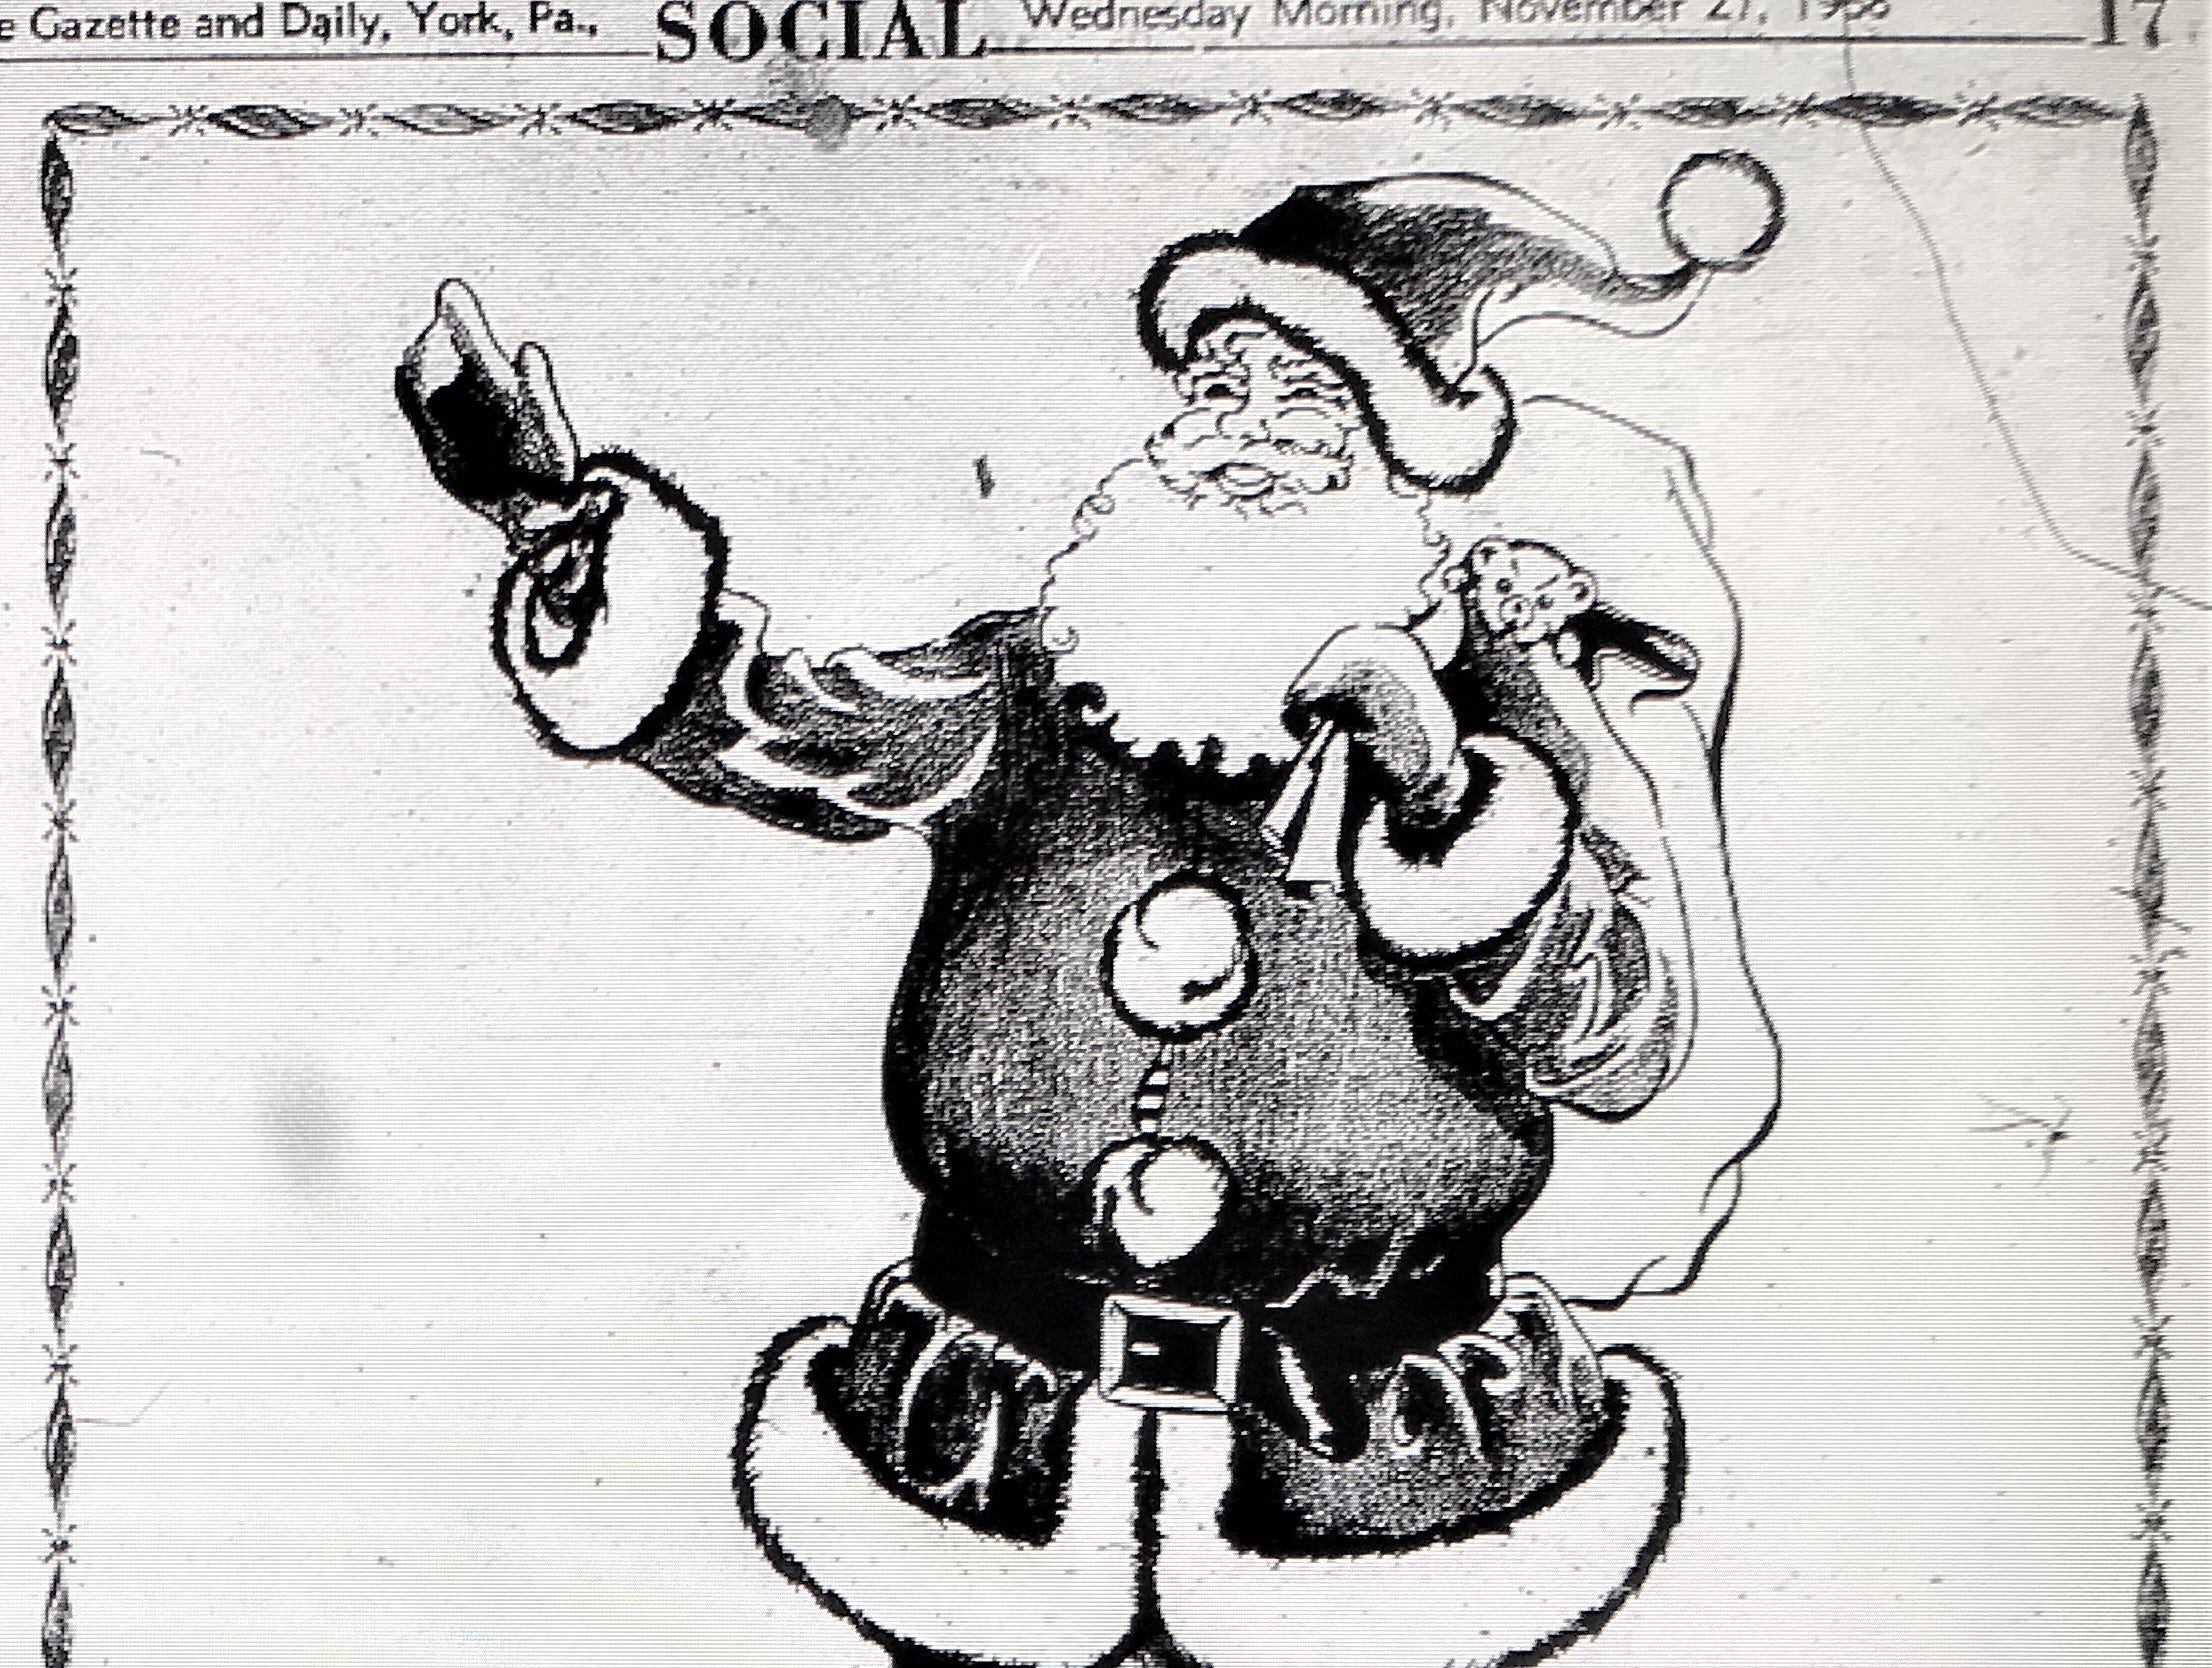 A 1958 advertisement inside an issue of the York Gazette and Daily for a Santa Claus meet and greet in Bear's department store. Bear's was located in Continental Square. The building is now being re-purposed for One Marketway West.